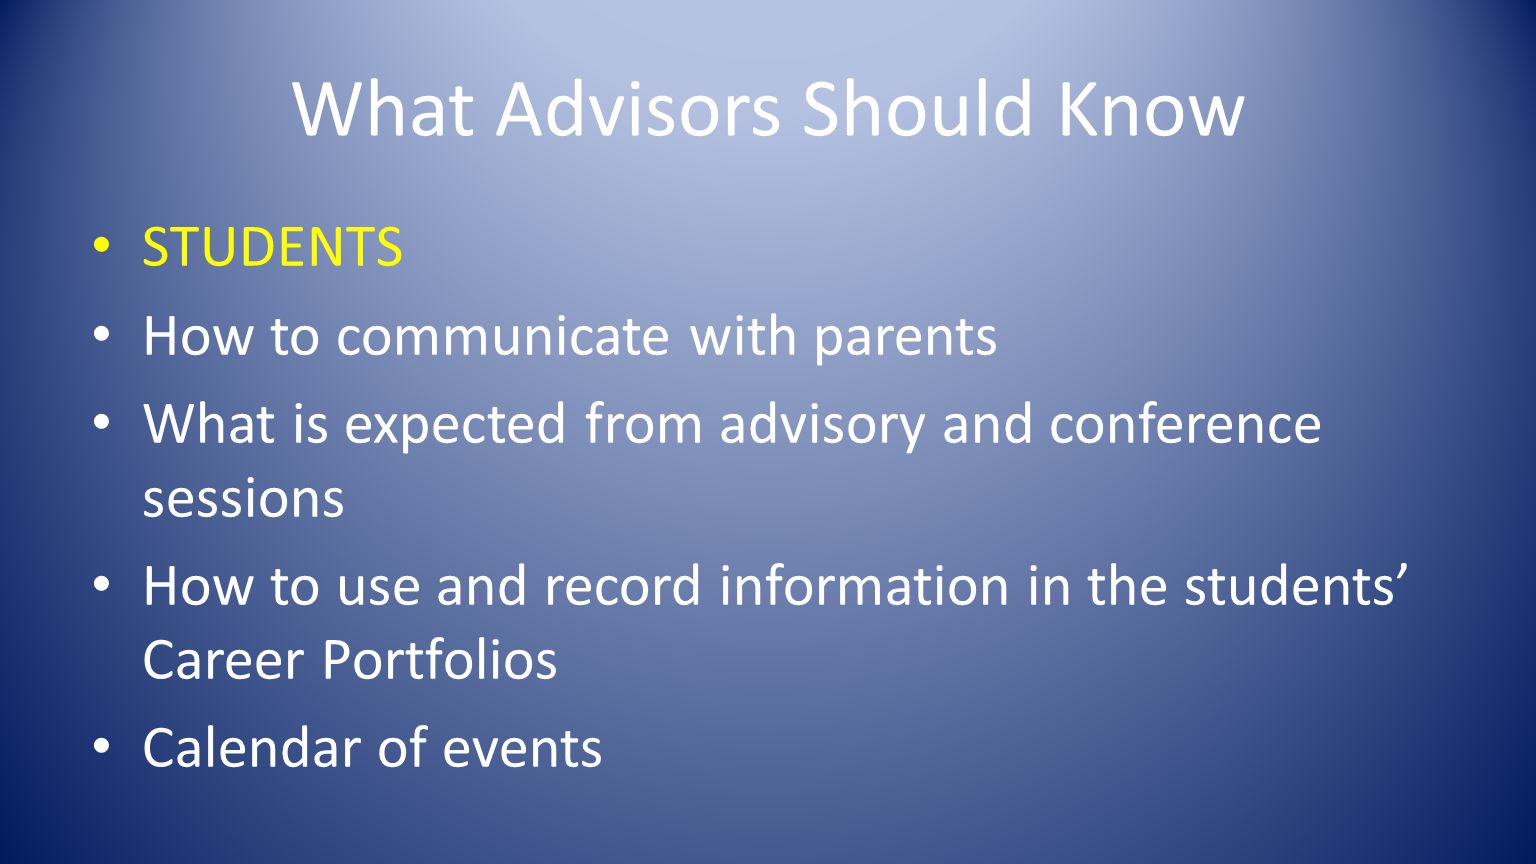 What Advisors Should Know STUDENTS How to communicate with parents What is expected from advisory and conference sessions How to use and record information in the students' Career Portfolios Calendar of events